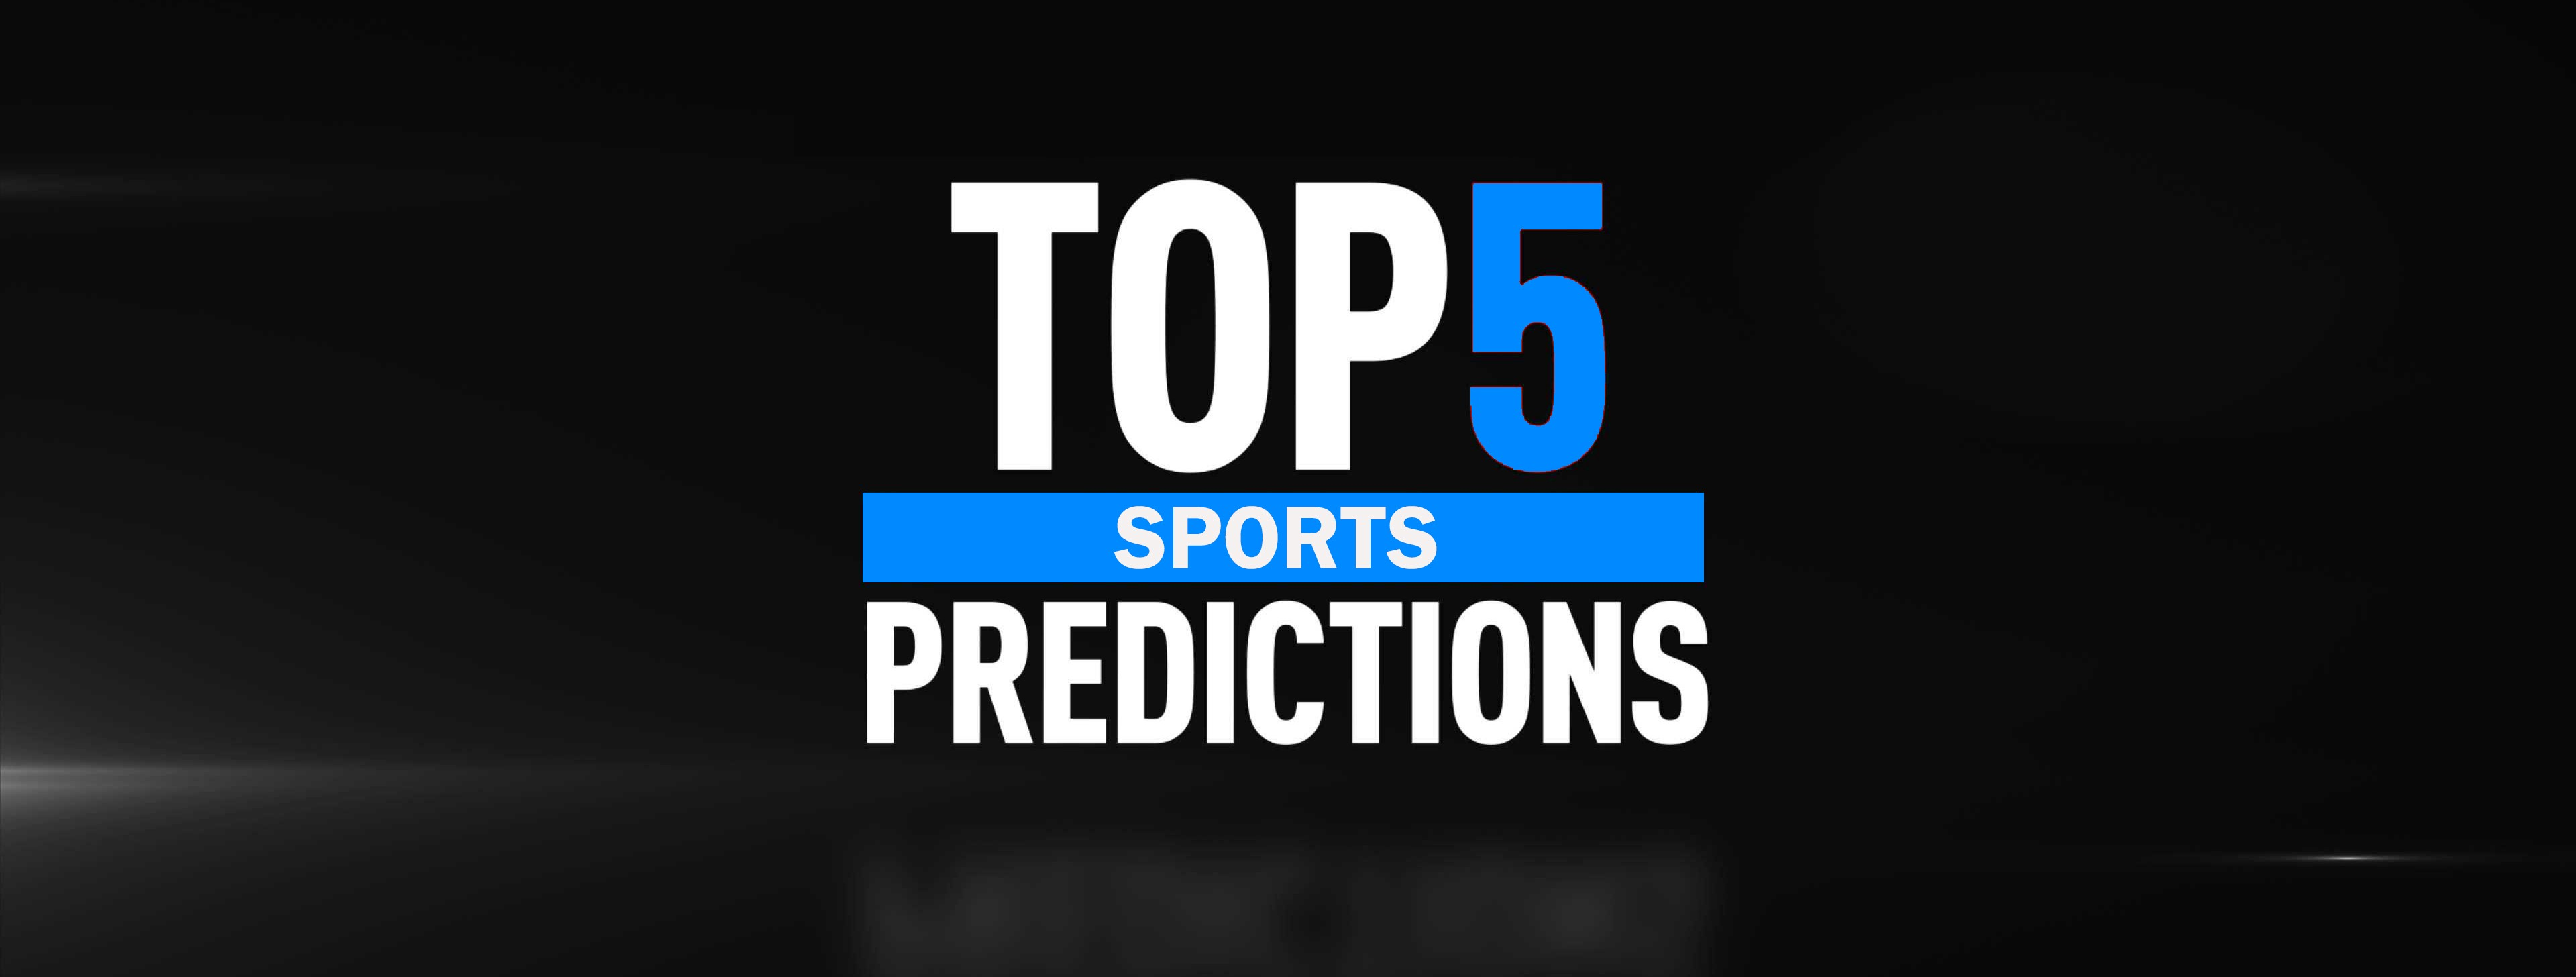 Top betting prediction websites free betfair betting software on youtube